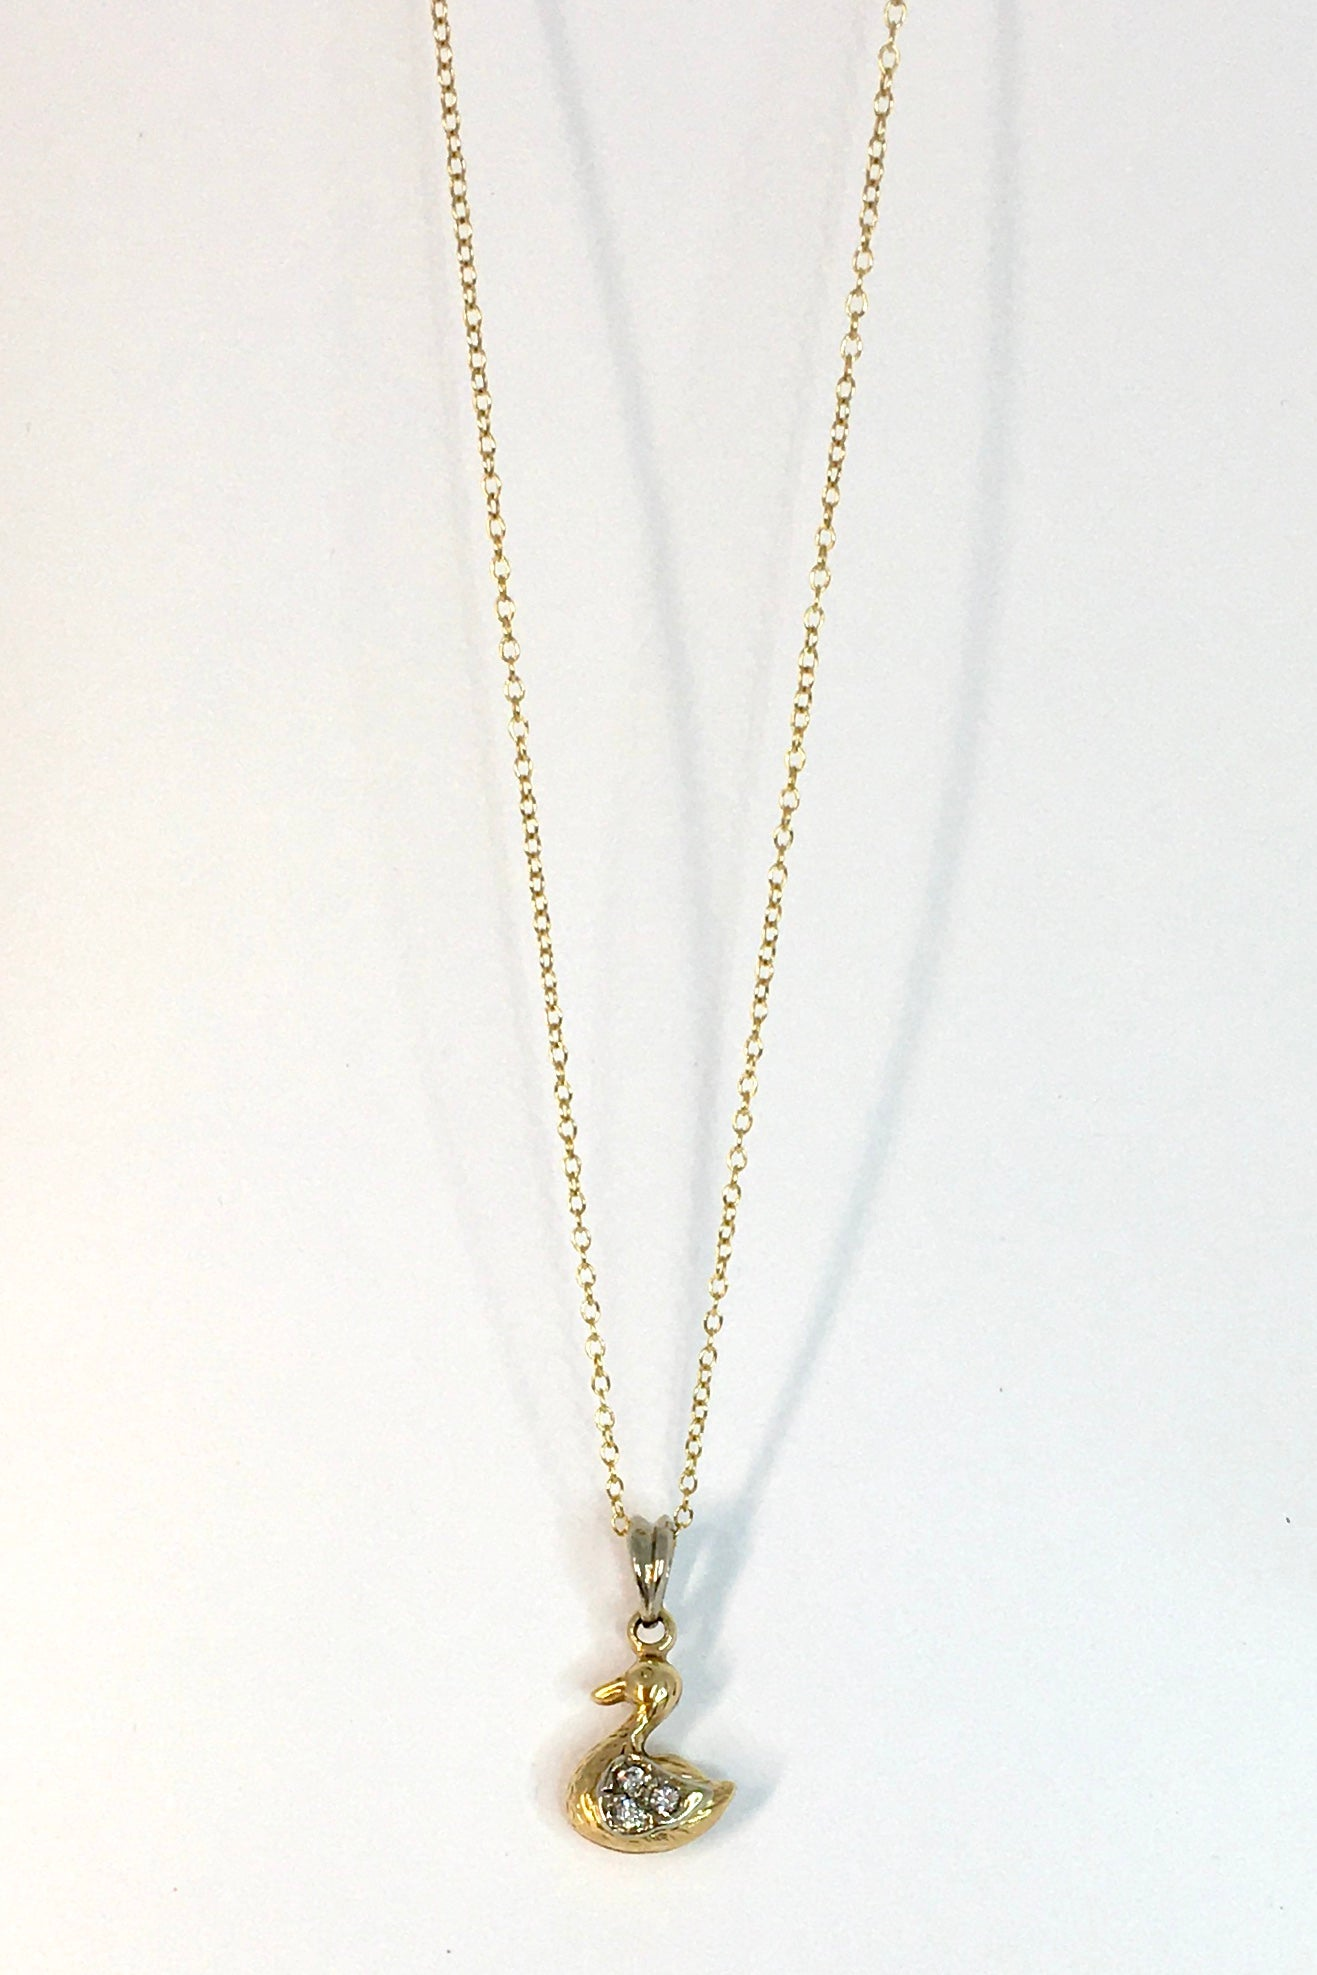 The Vintage Pendant Little Gold Duck is a 9ct gold duck pendant featuring silver pendant bail and 9ct gold chain.